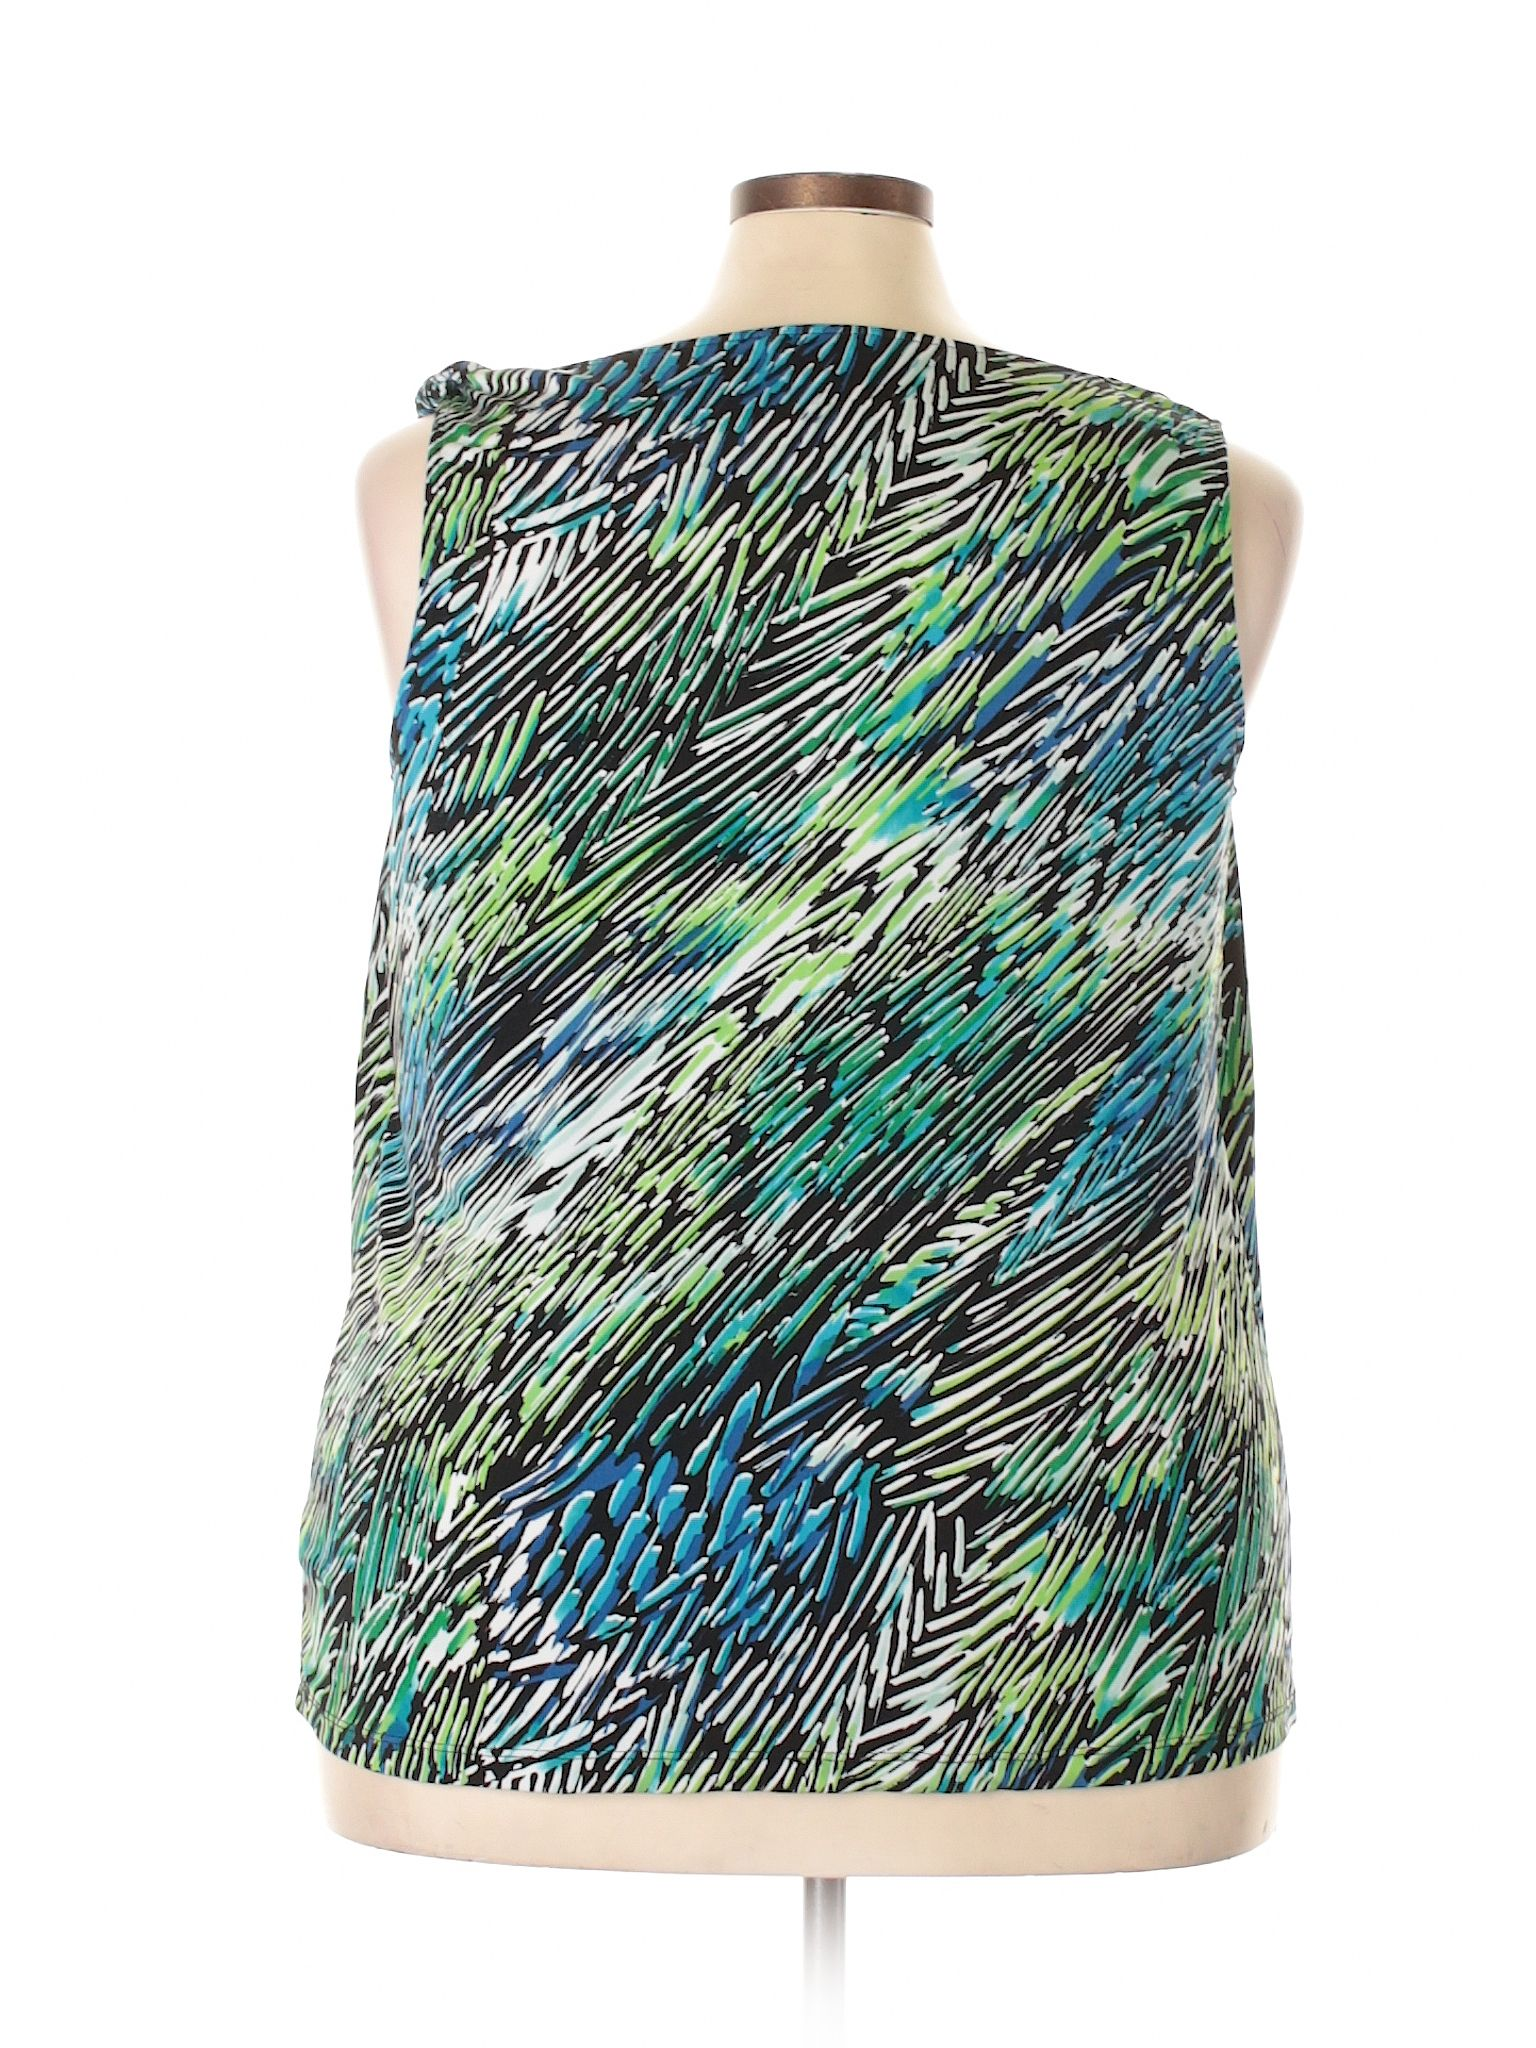 George Sleeveless Top Size 2000 Green Womens Tops  $699